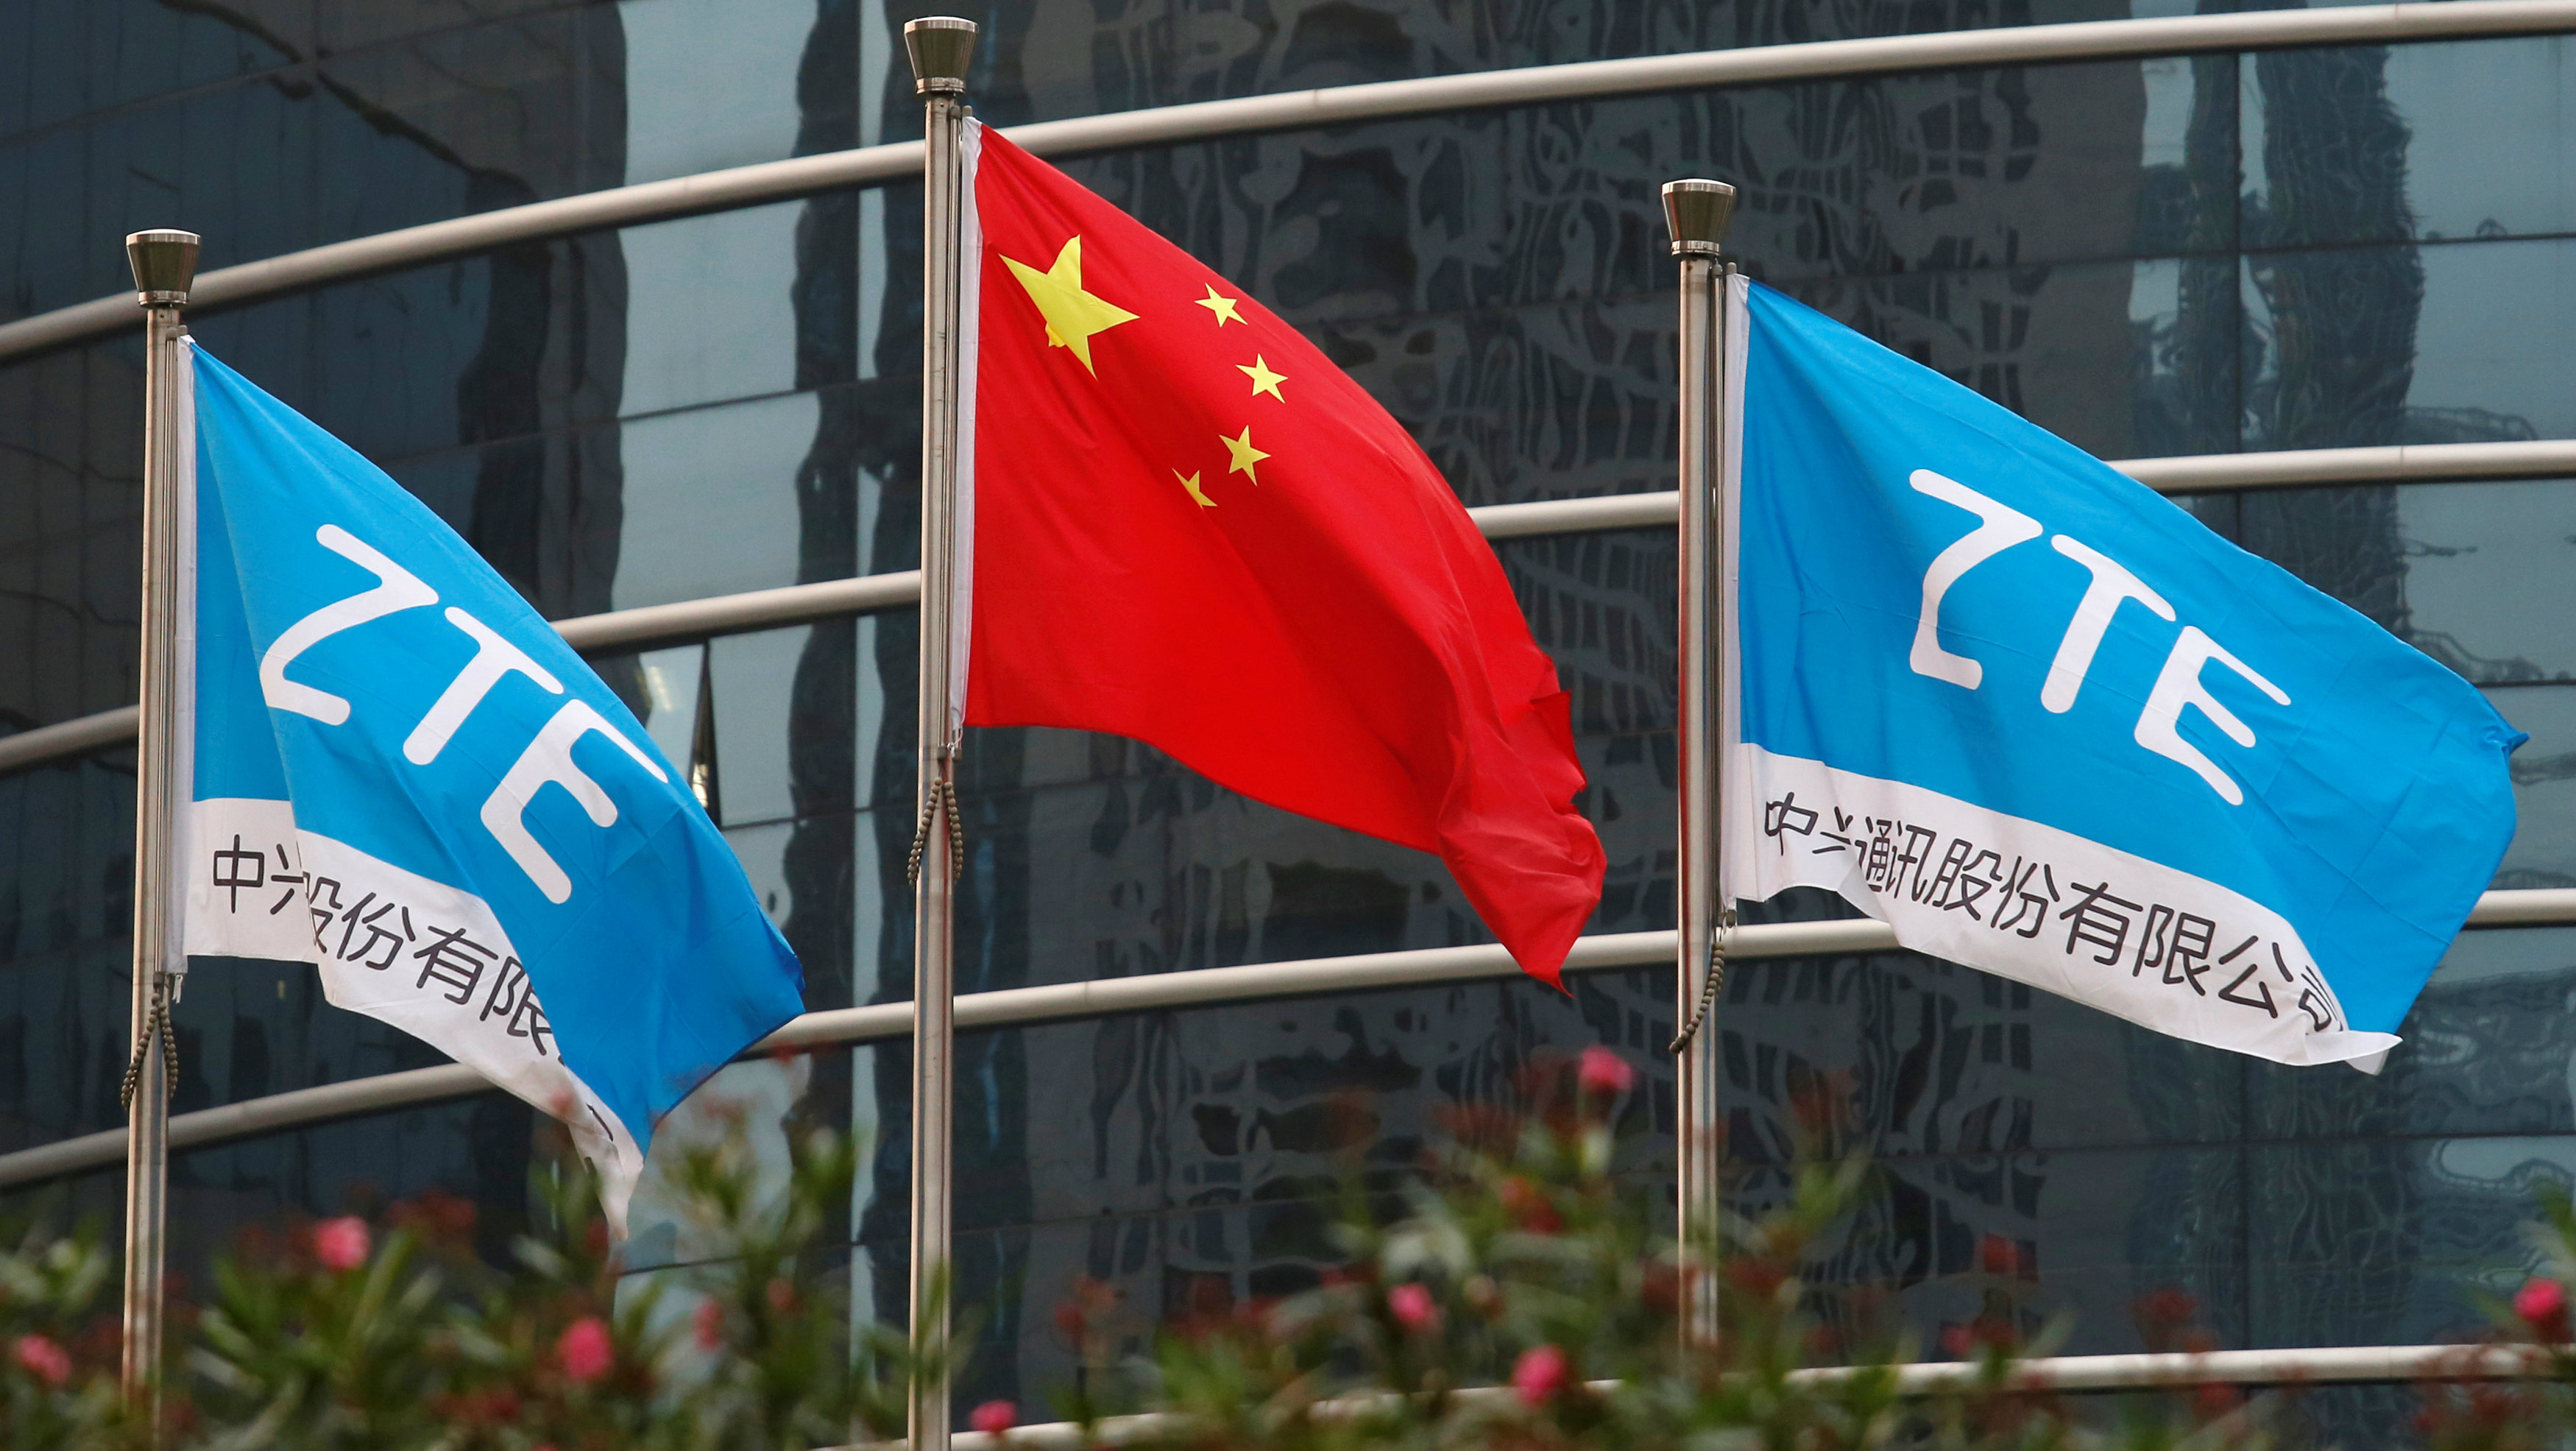 A Chinese national flag and two flags bearing the name of ZTE fly outside the ZTE R&D building in Shenzhen